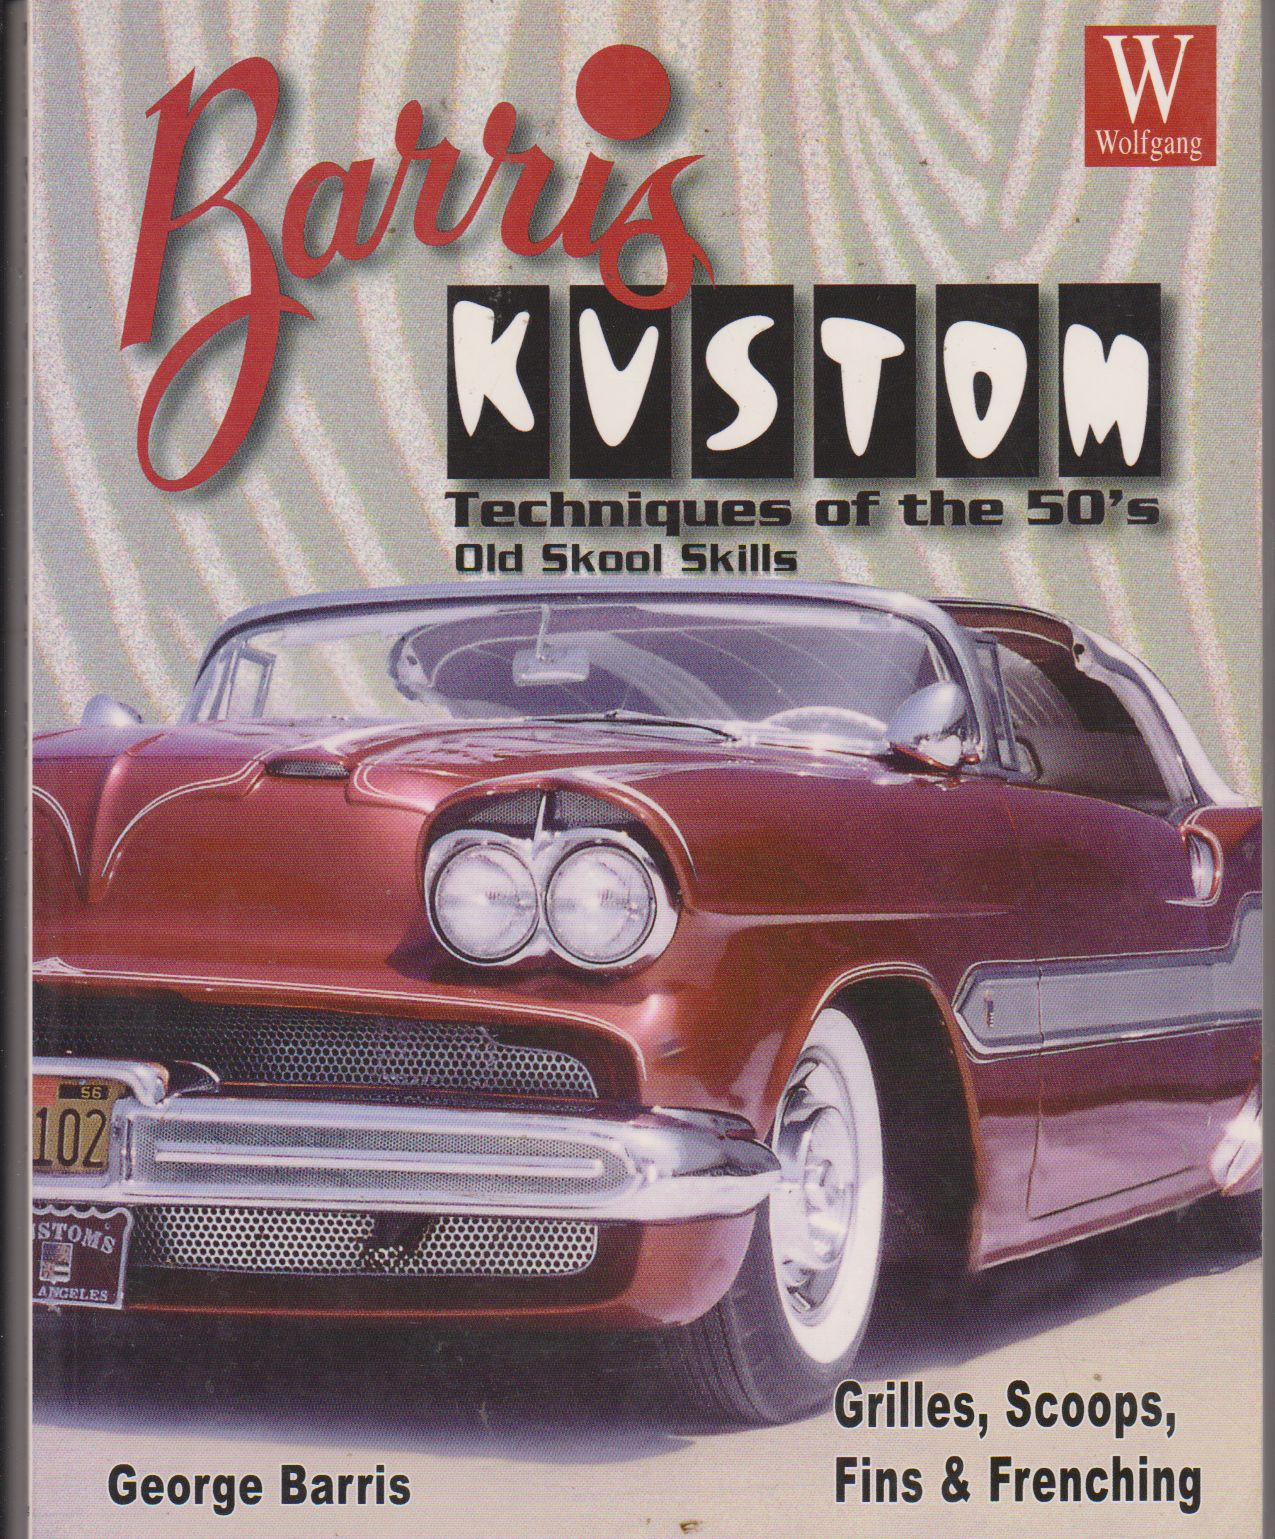 Barris Kustoms of the 50'S : Grills, Scoops, Flames, Frenching